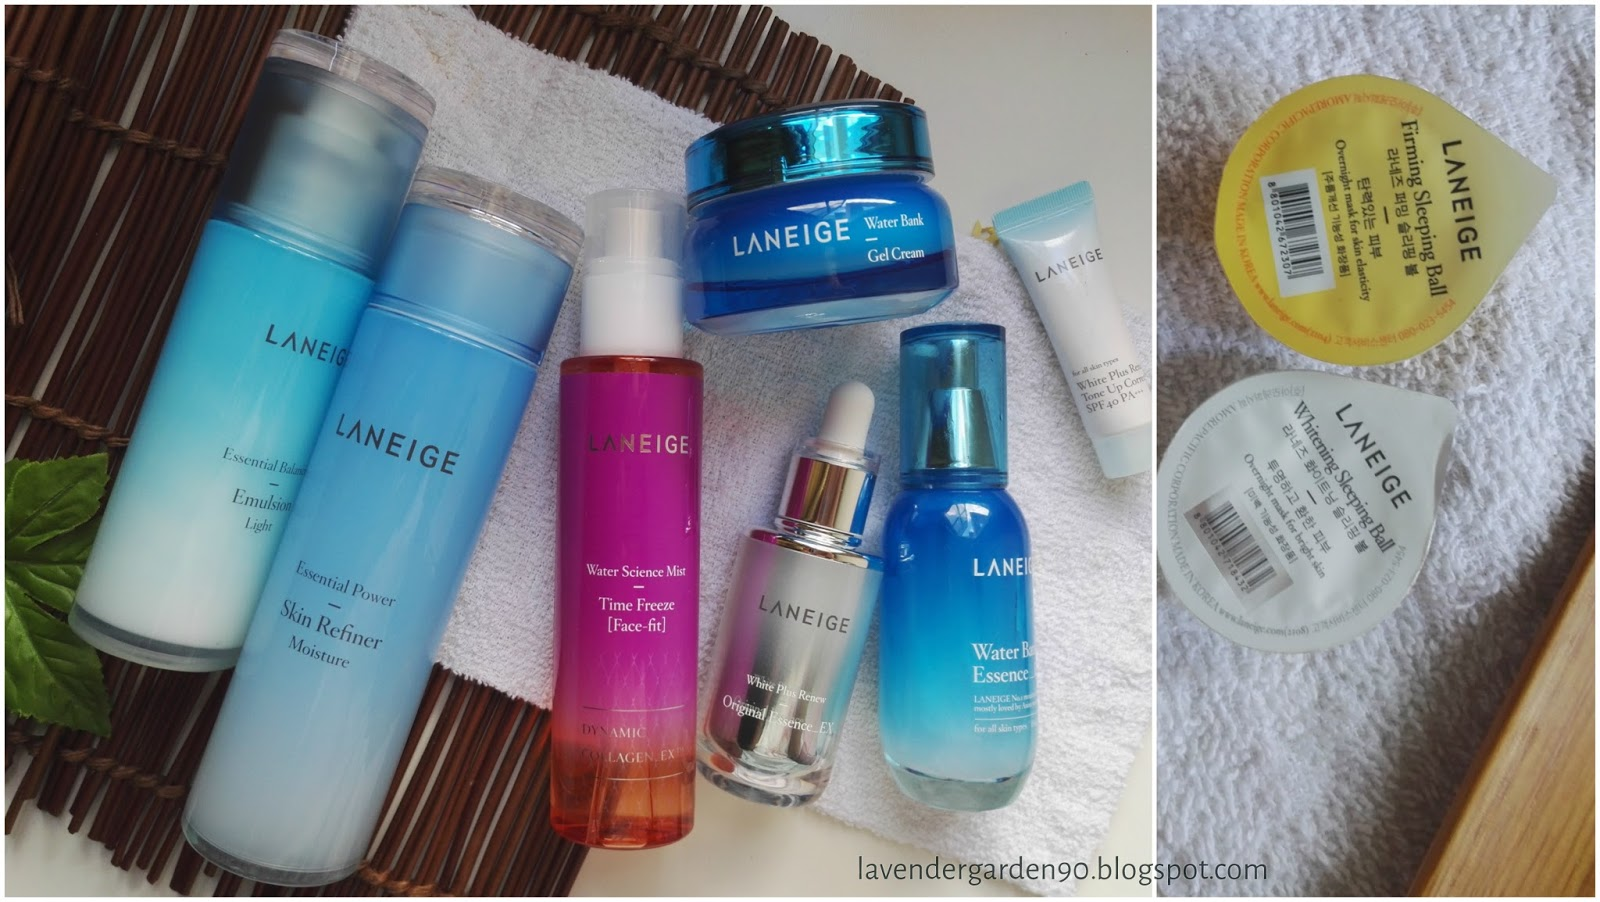 Carolyns Lavender Garden Of Water Science And Dewy Skin A Brand Laneige Original Korea Trial Kit Sample Basic Care Moisture 2 Items Overview Reviews 25 Products Part